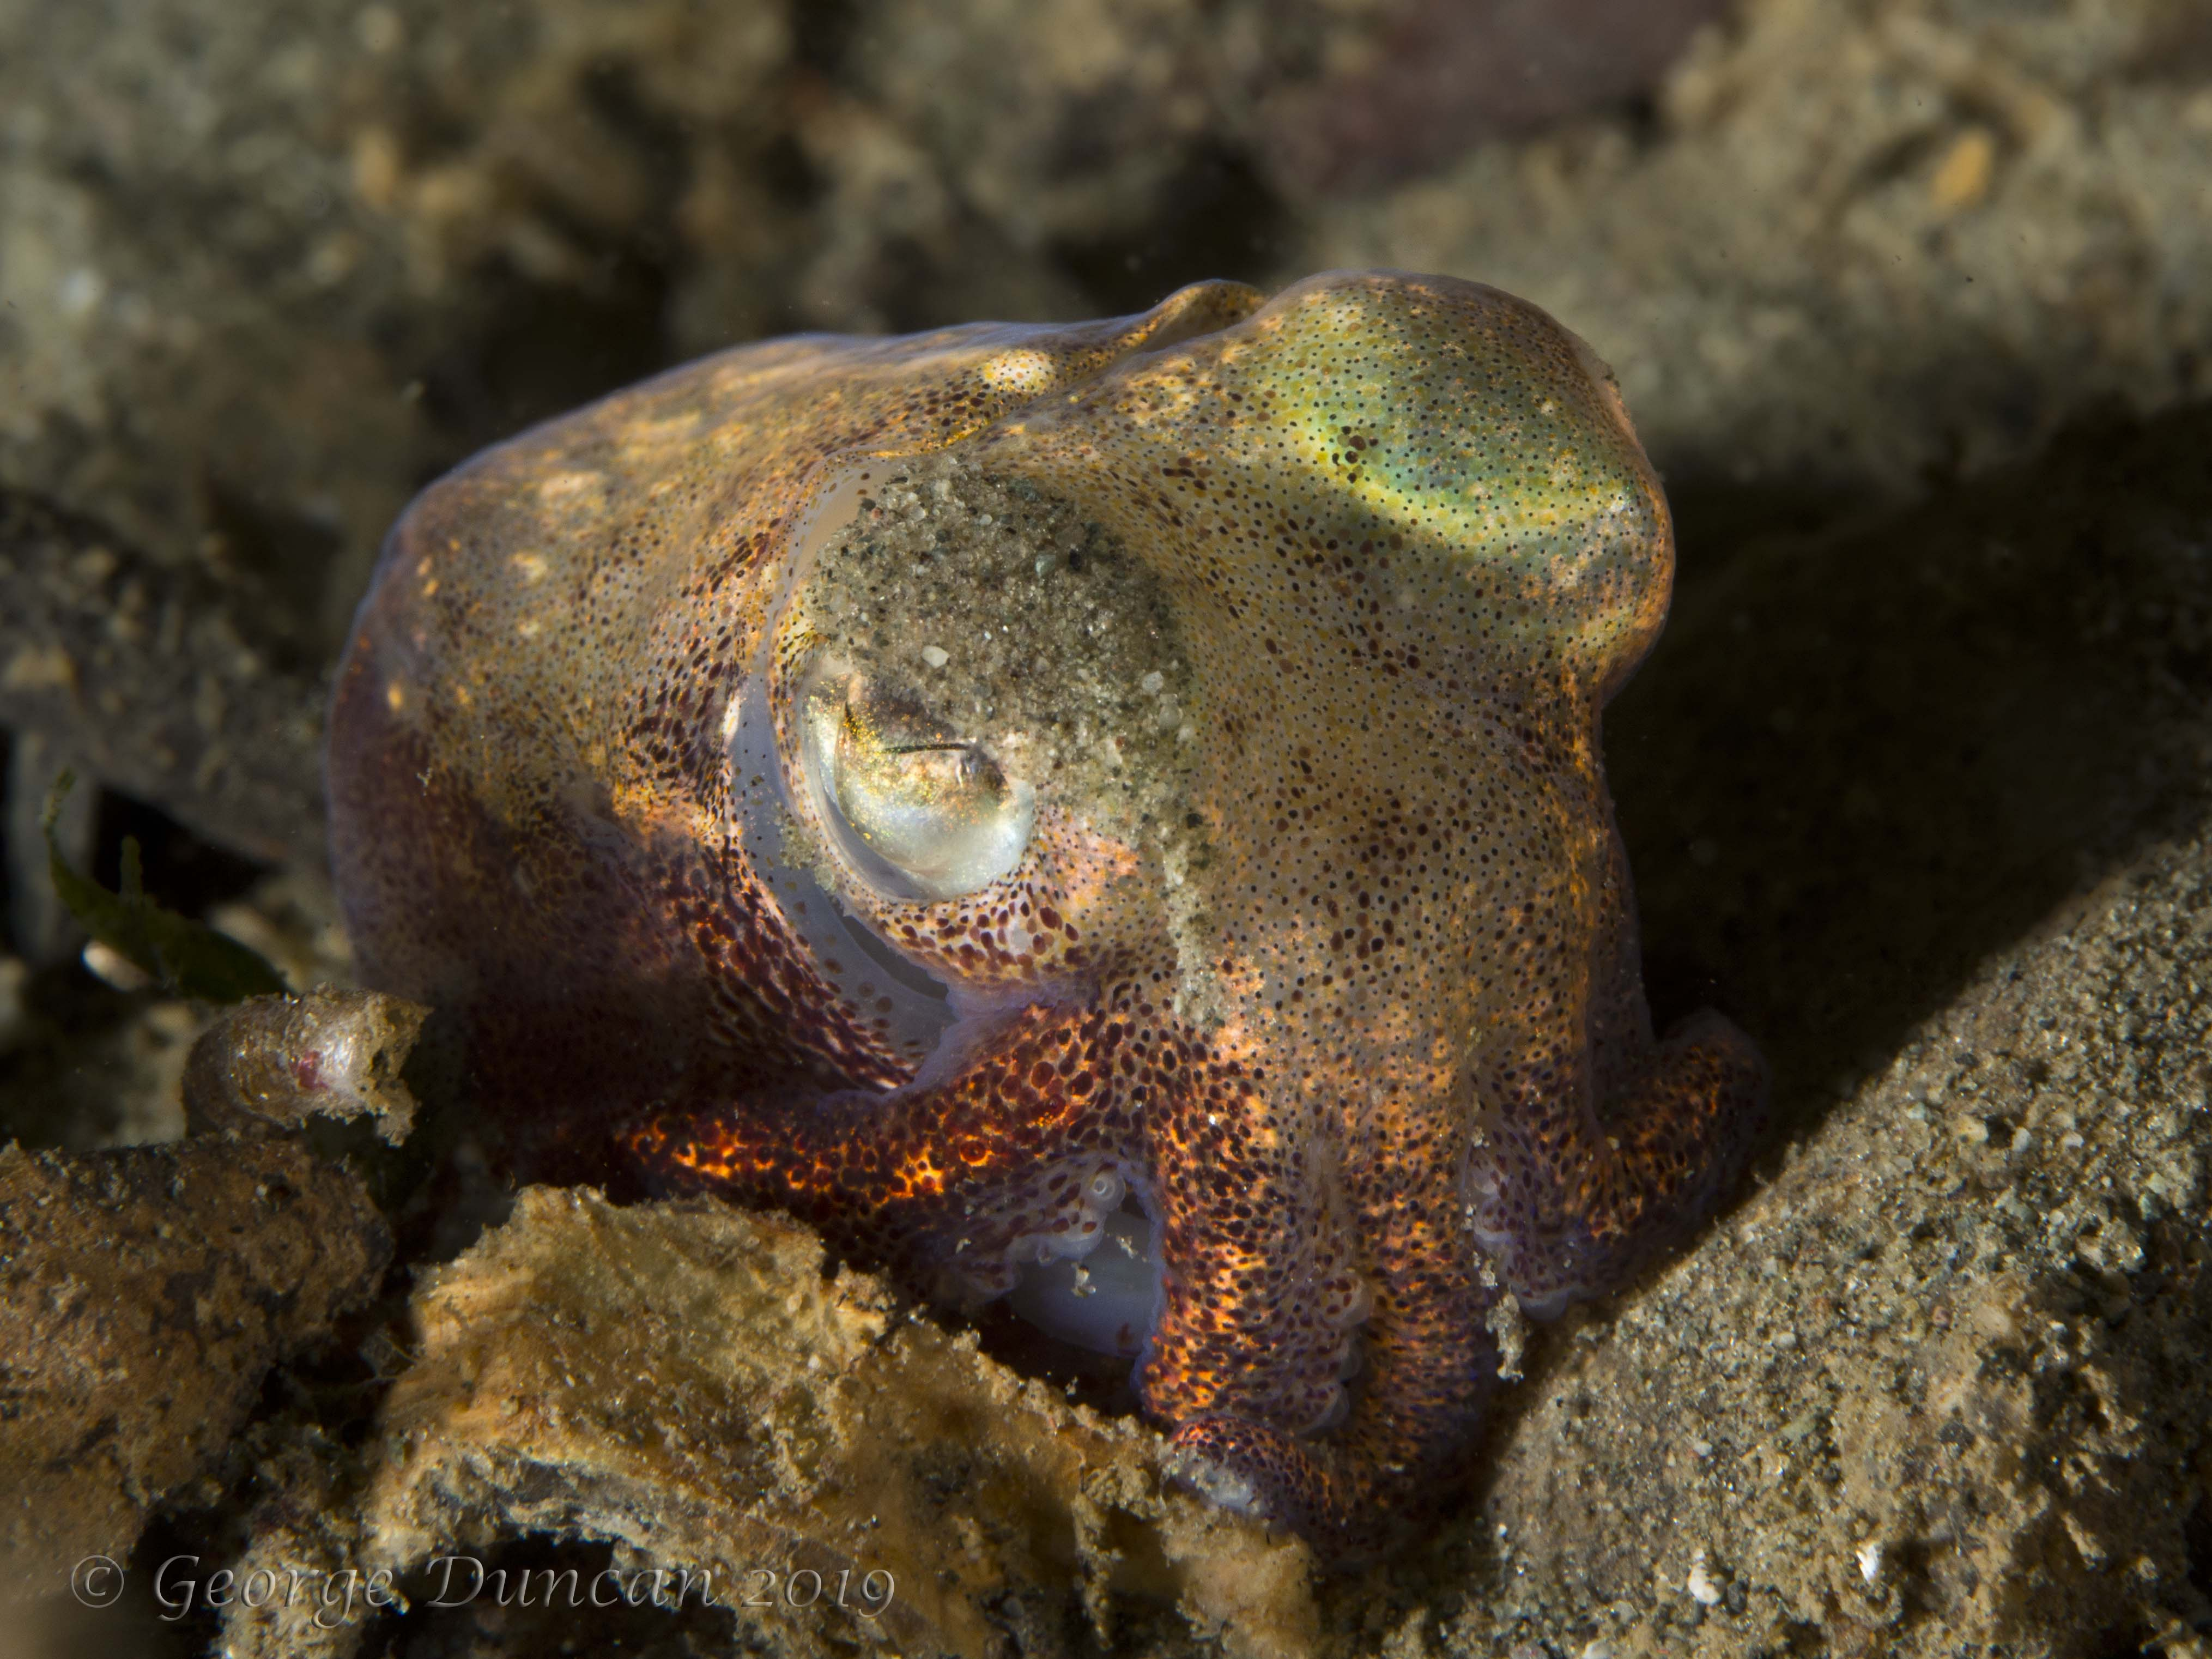 Stubby Squid with Sand in its Eye.jpg